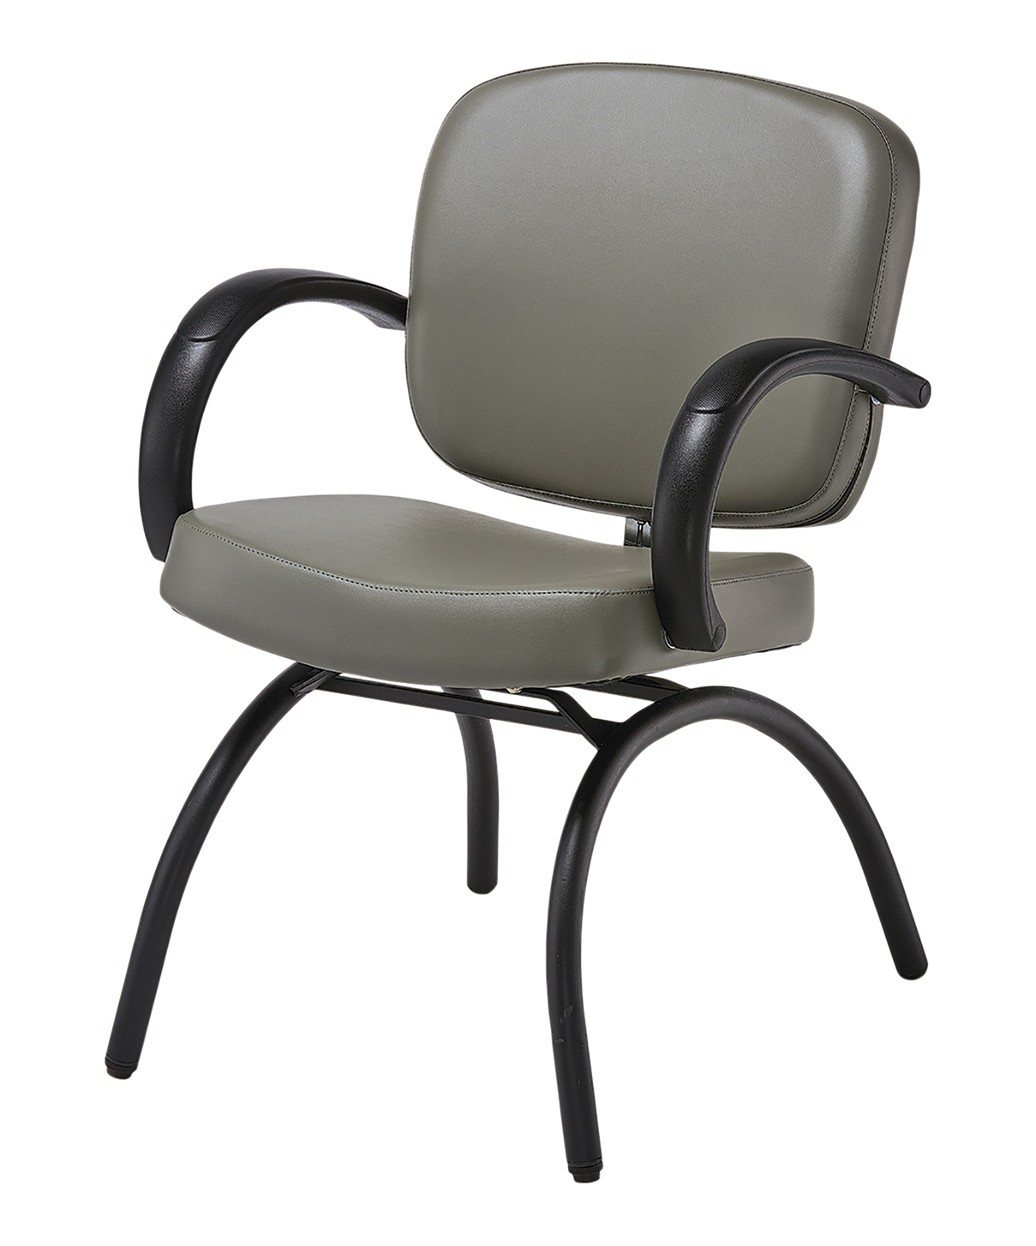 3620 Messima Reception Chair with Curved Legs